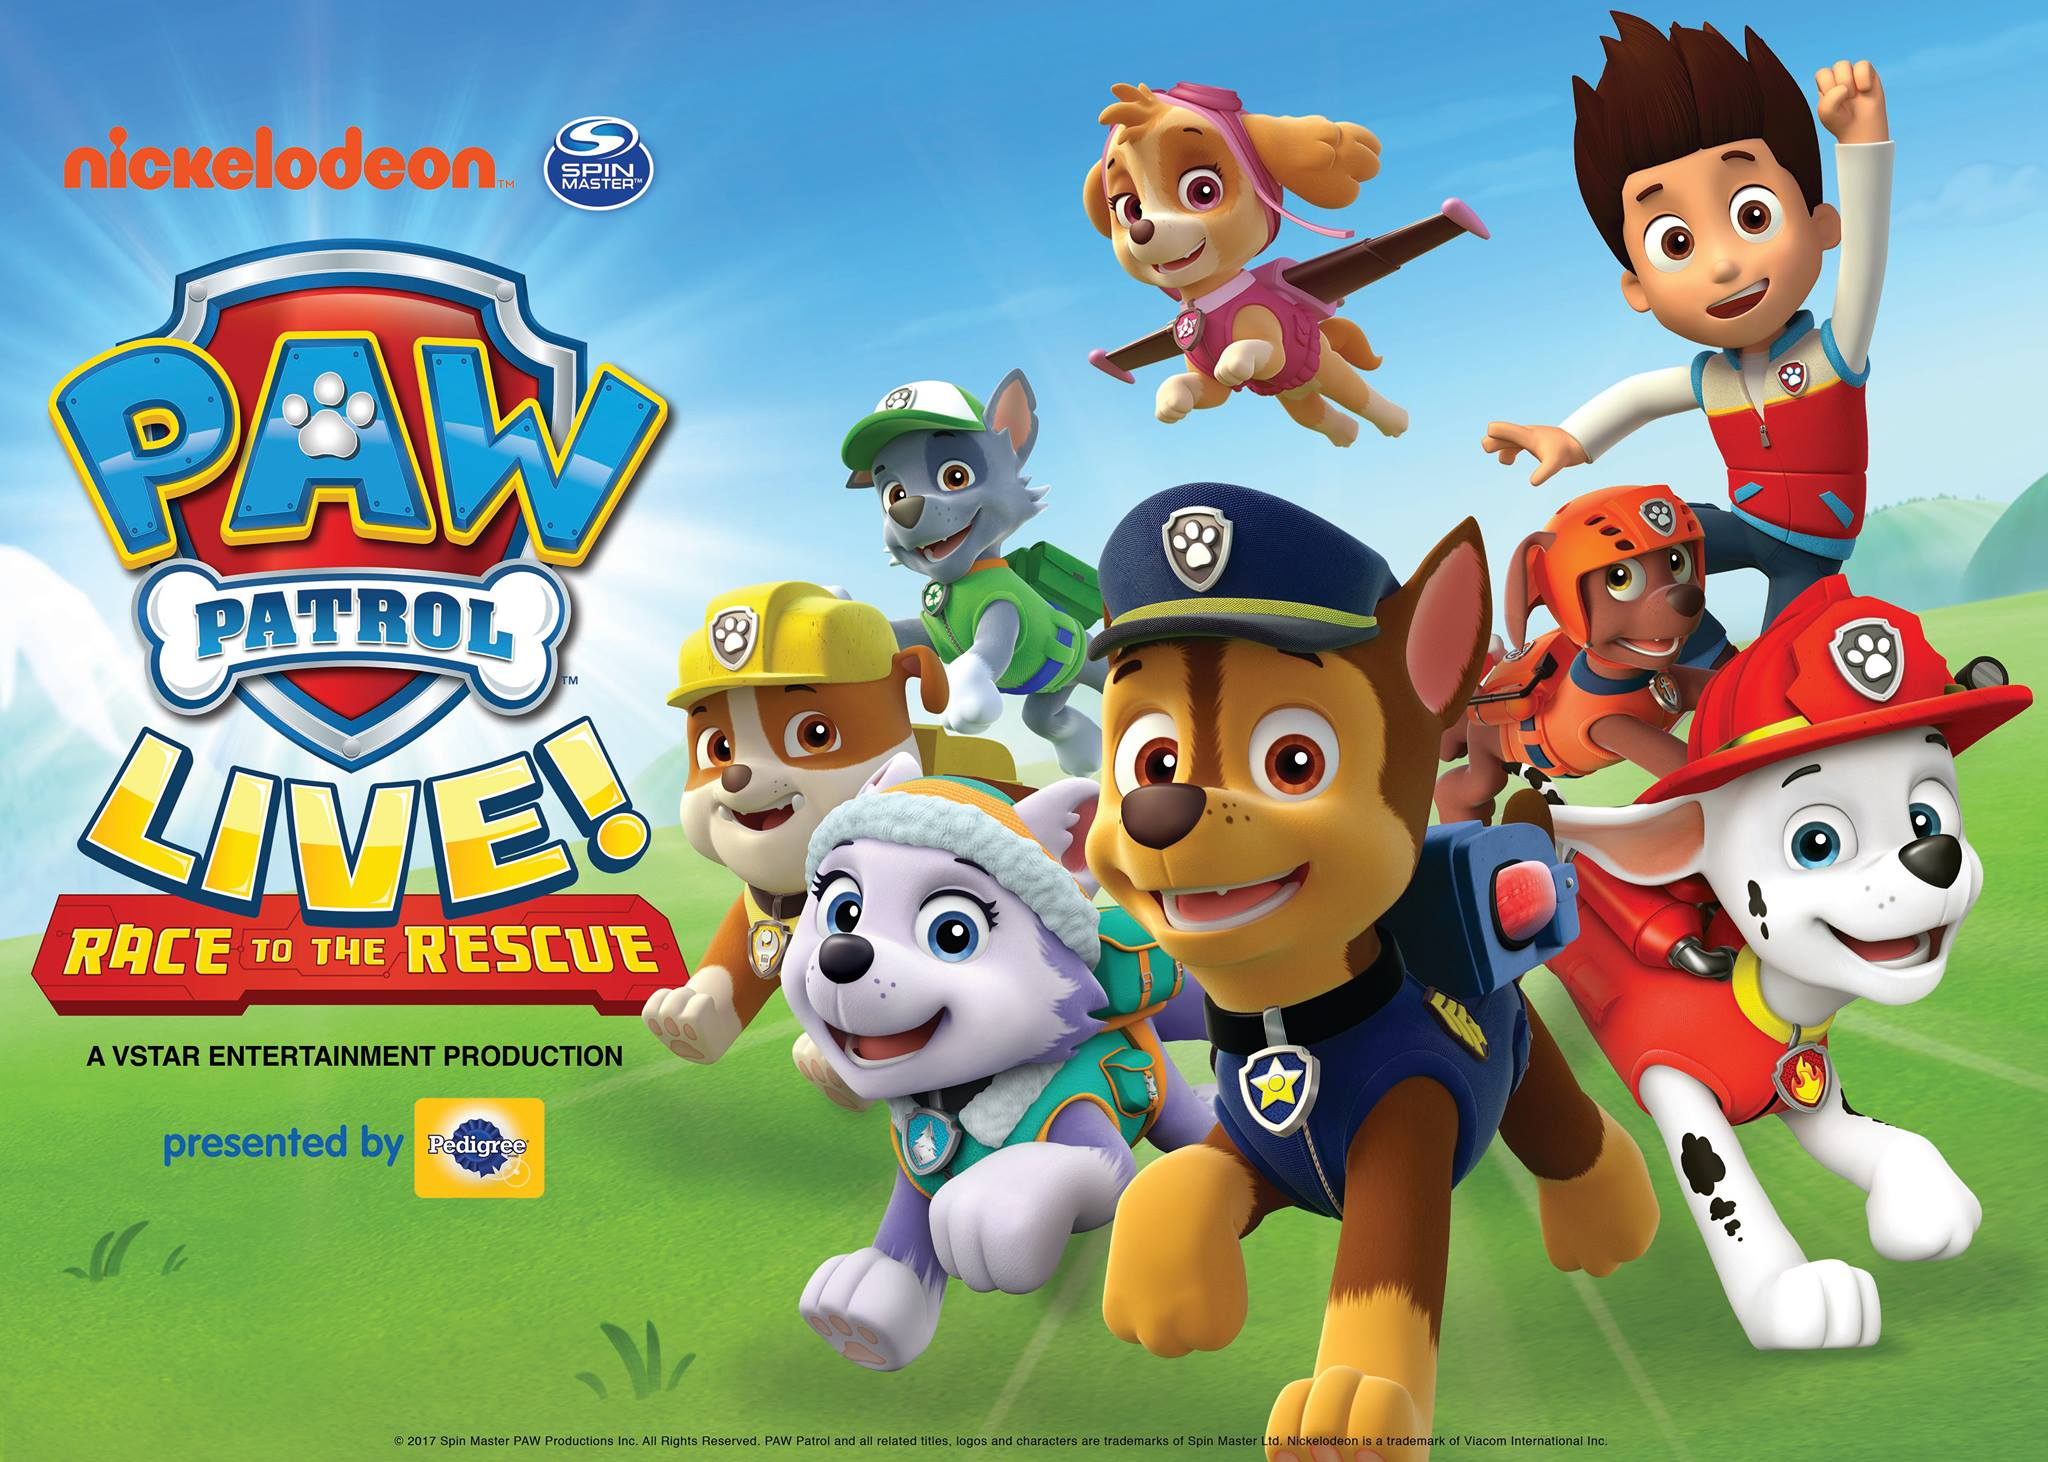 PAW Patrol is on a roll with a pup-tastic live tour